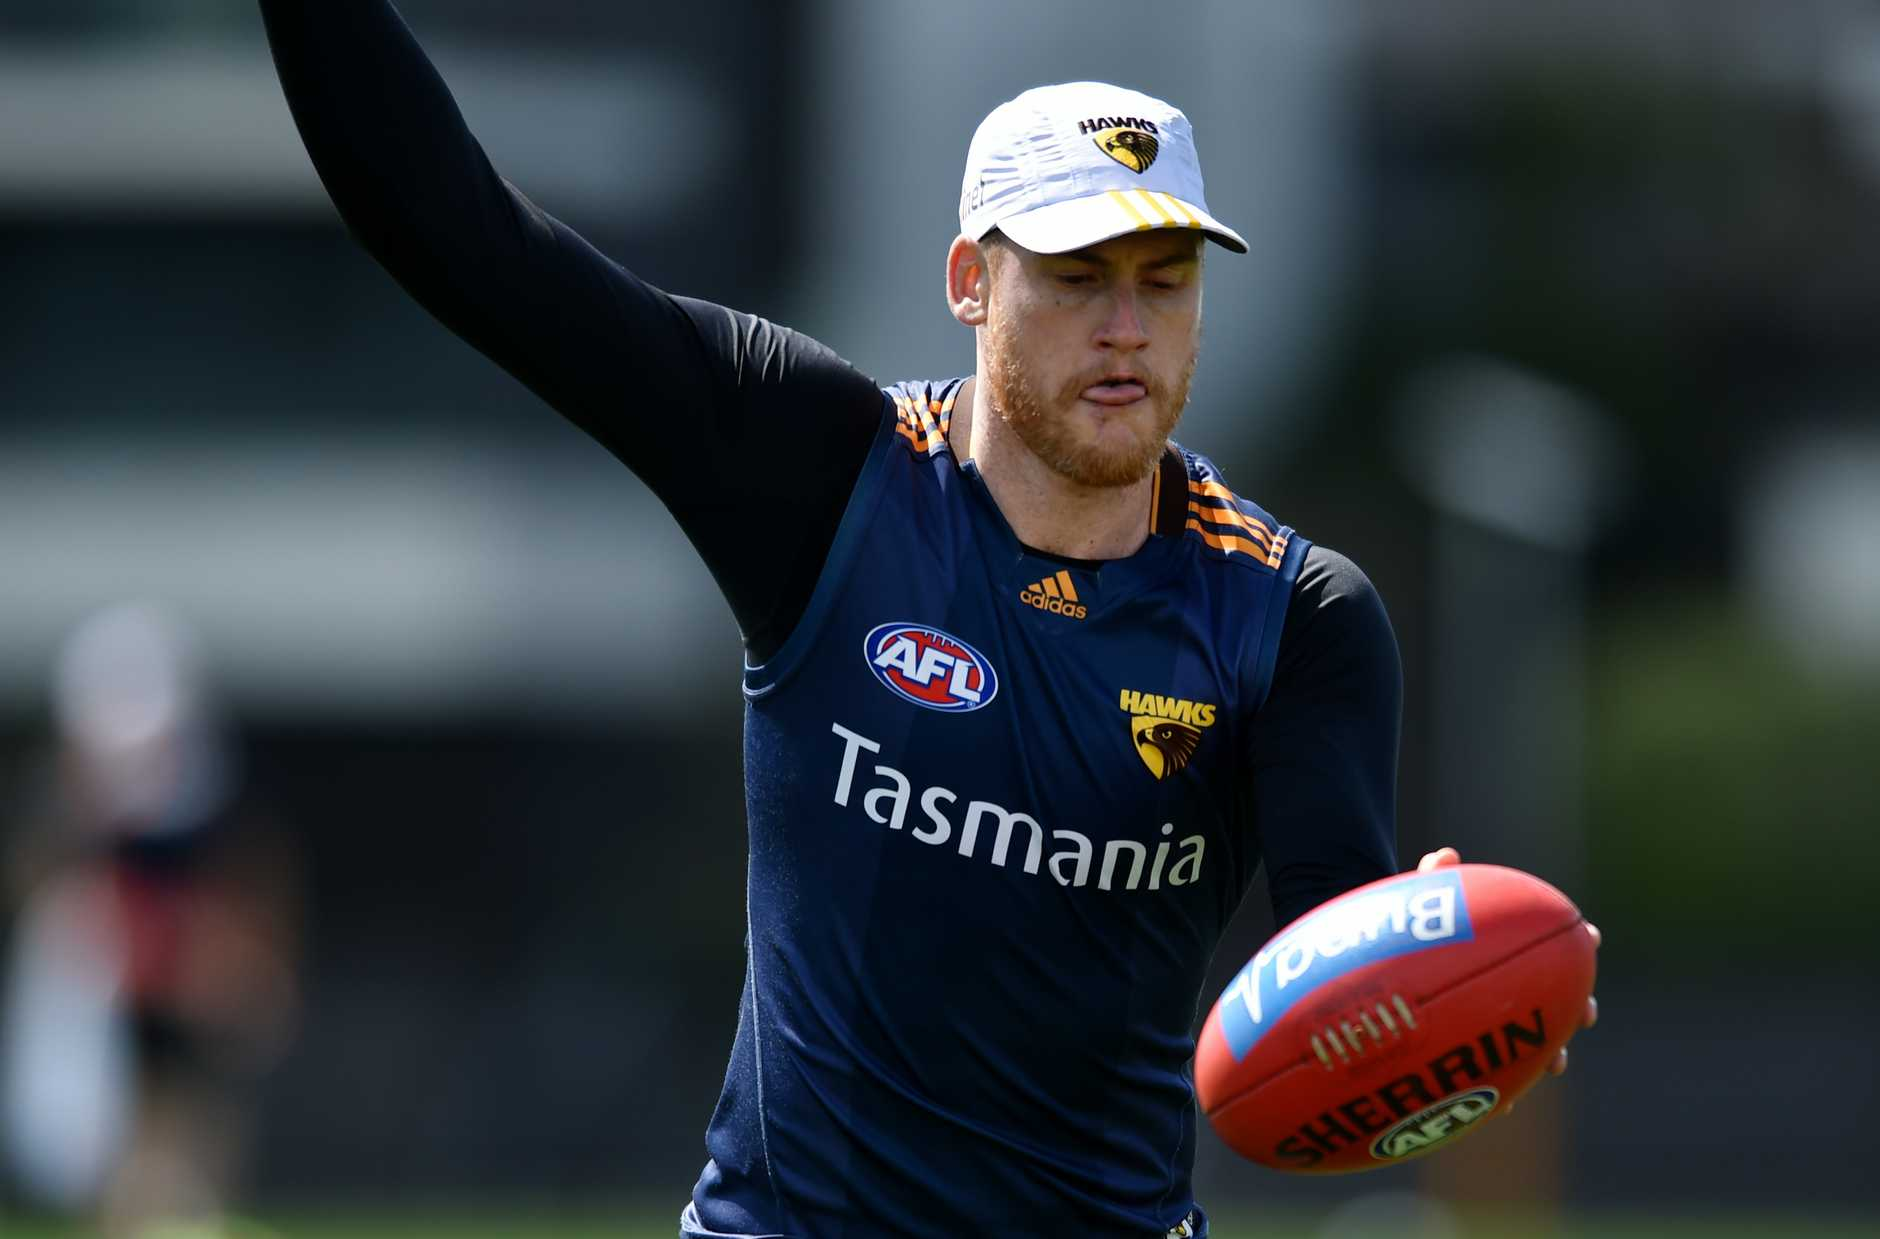 Jarryd Roughead has a bigger battle on his hands than trying to help Hawthorn win a fourth premiership in a row.